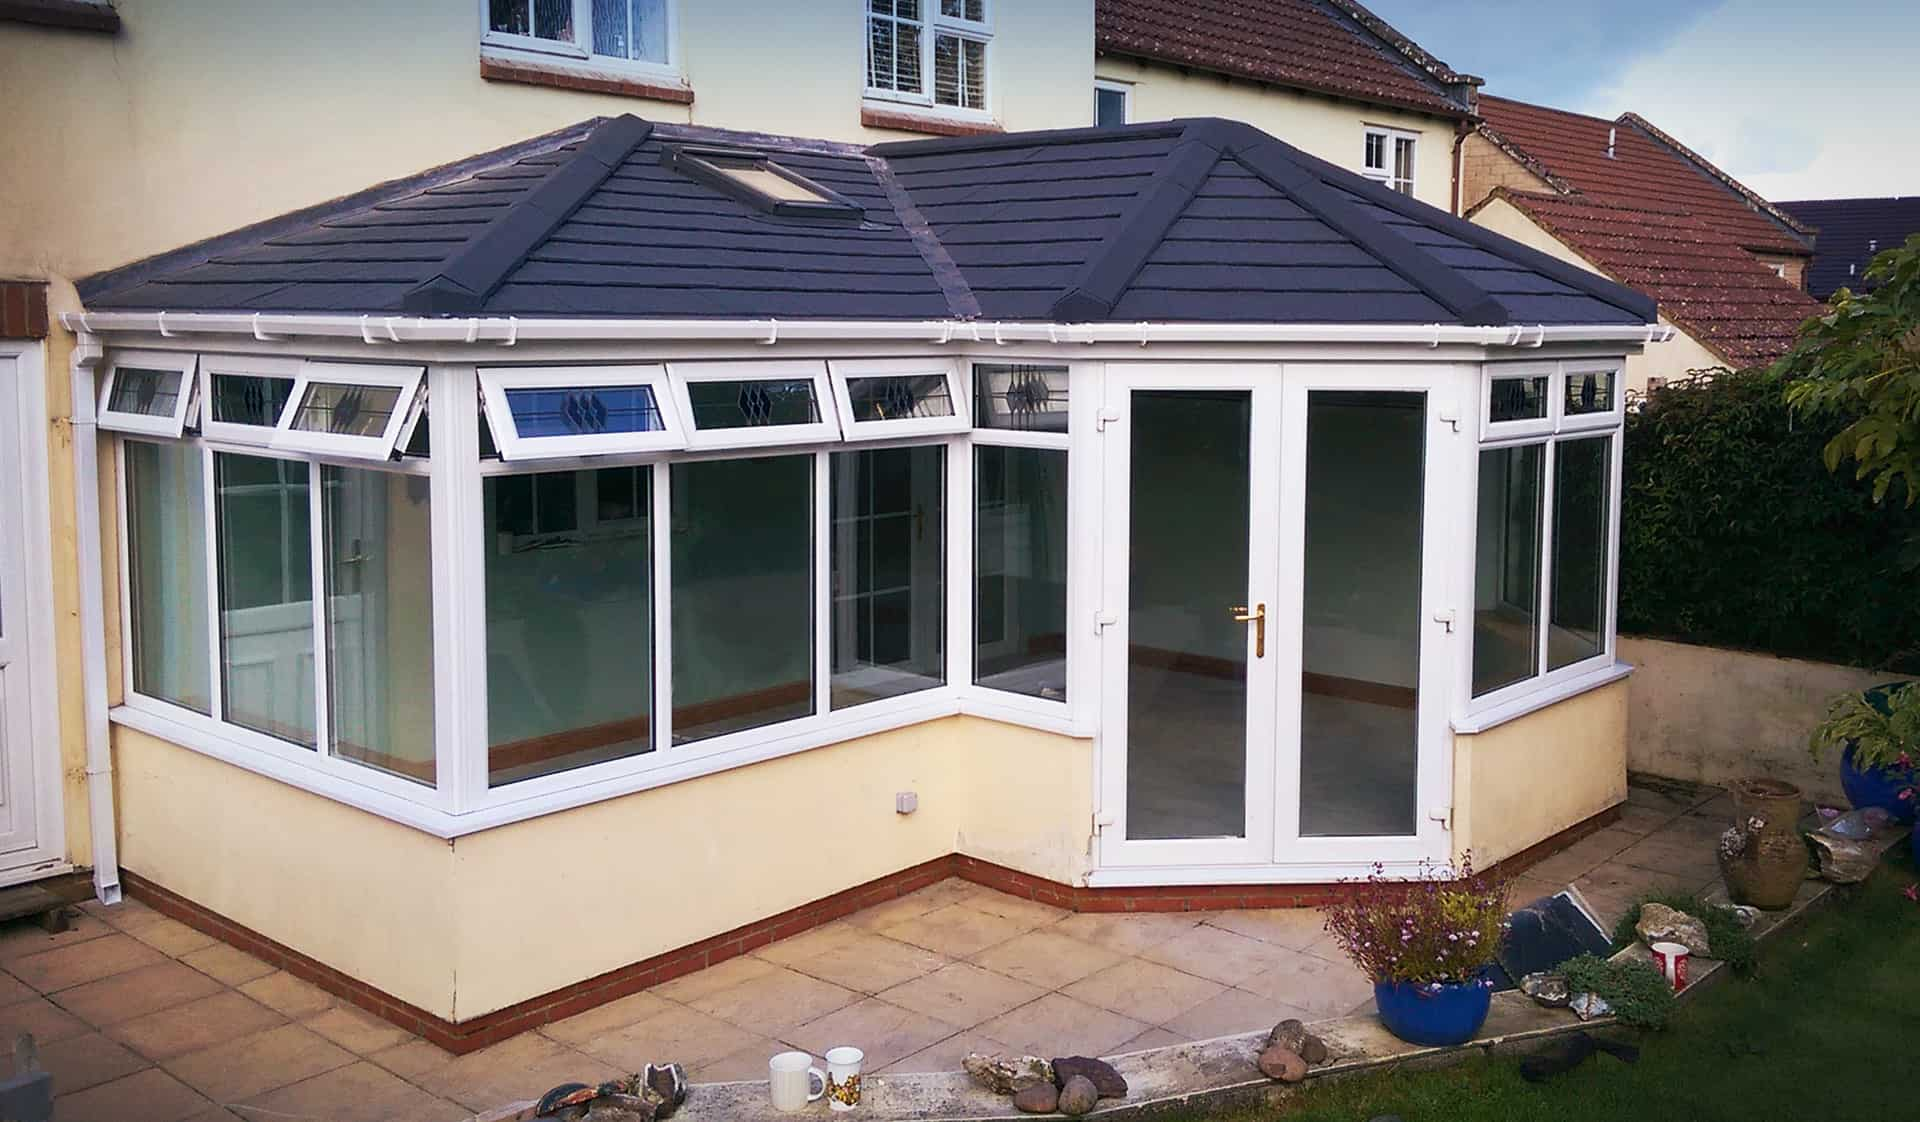 tiled conservatory roof with dark tiles